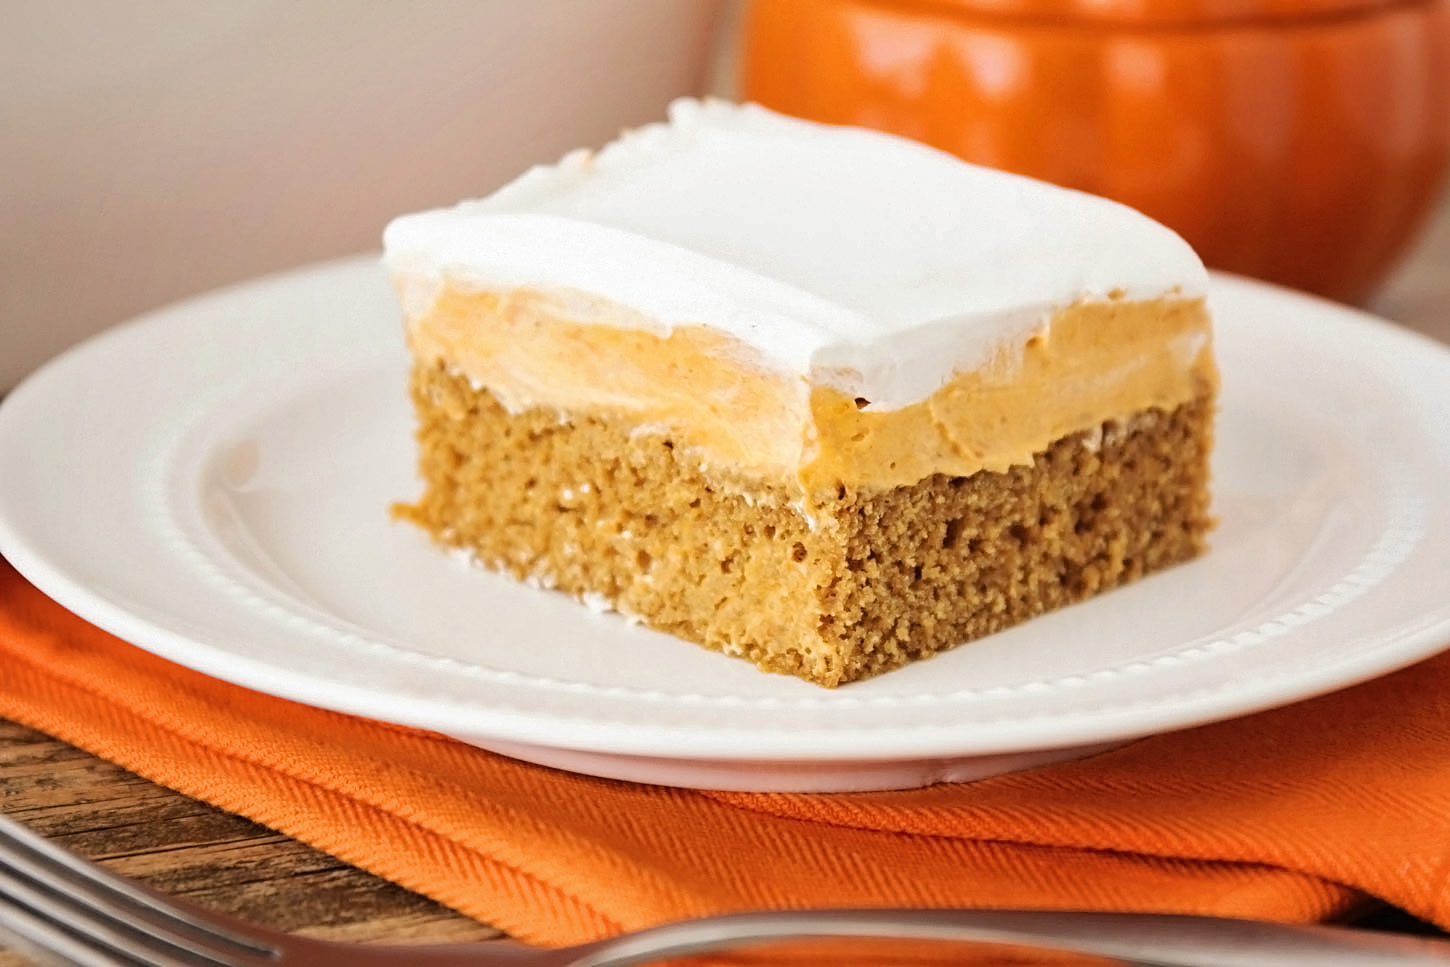 Delicious layers of soft gingerbread cake, creamy pumpkin filling and light whipped topping in an easy to make fall dessert.